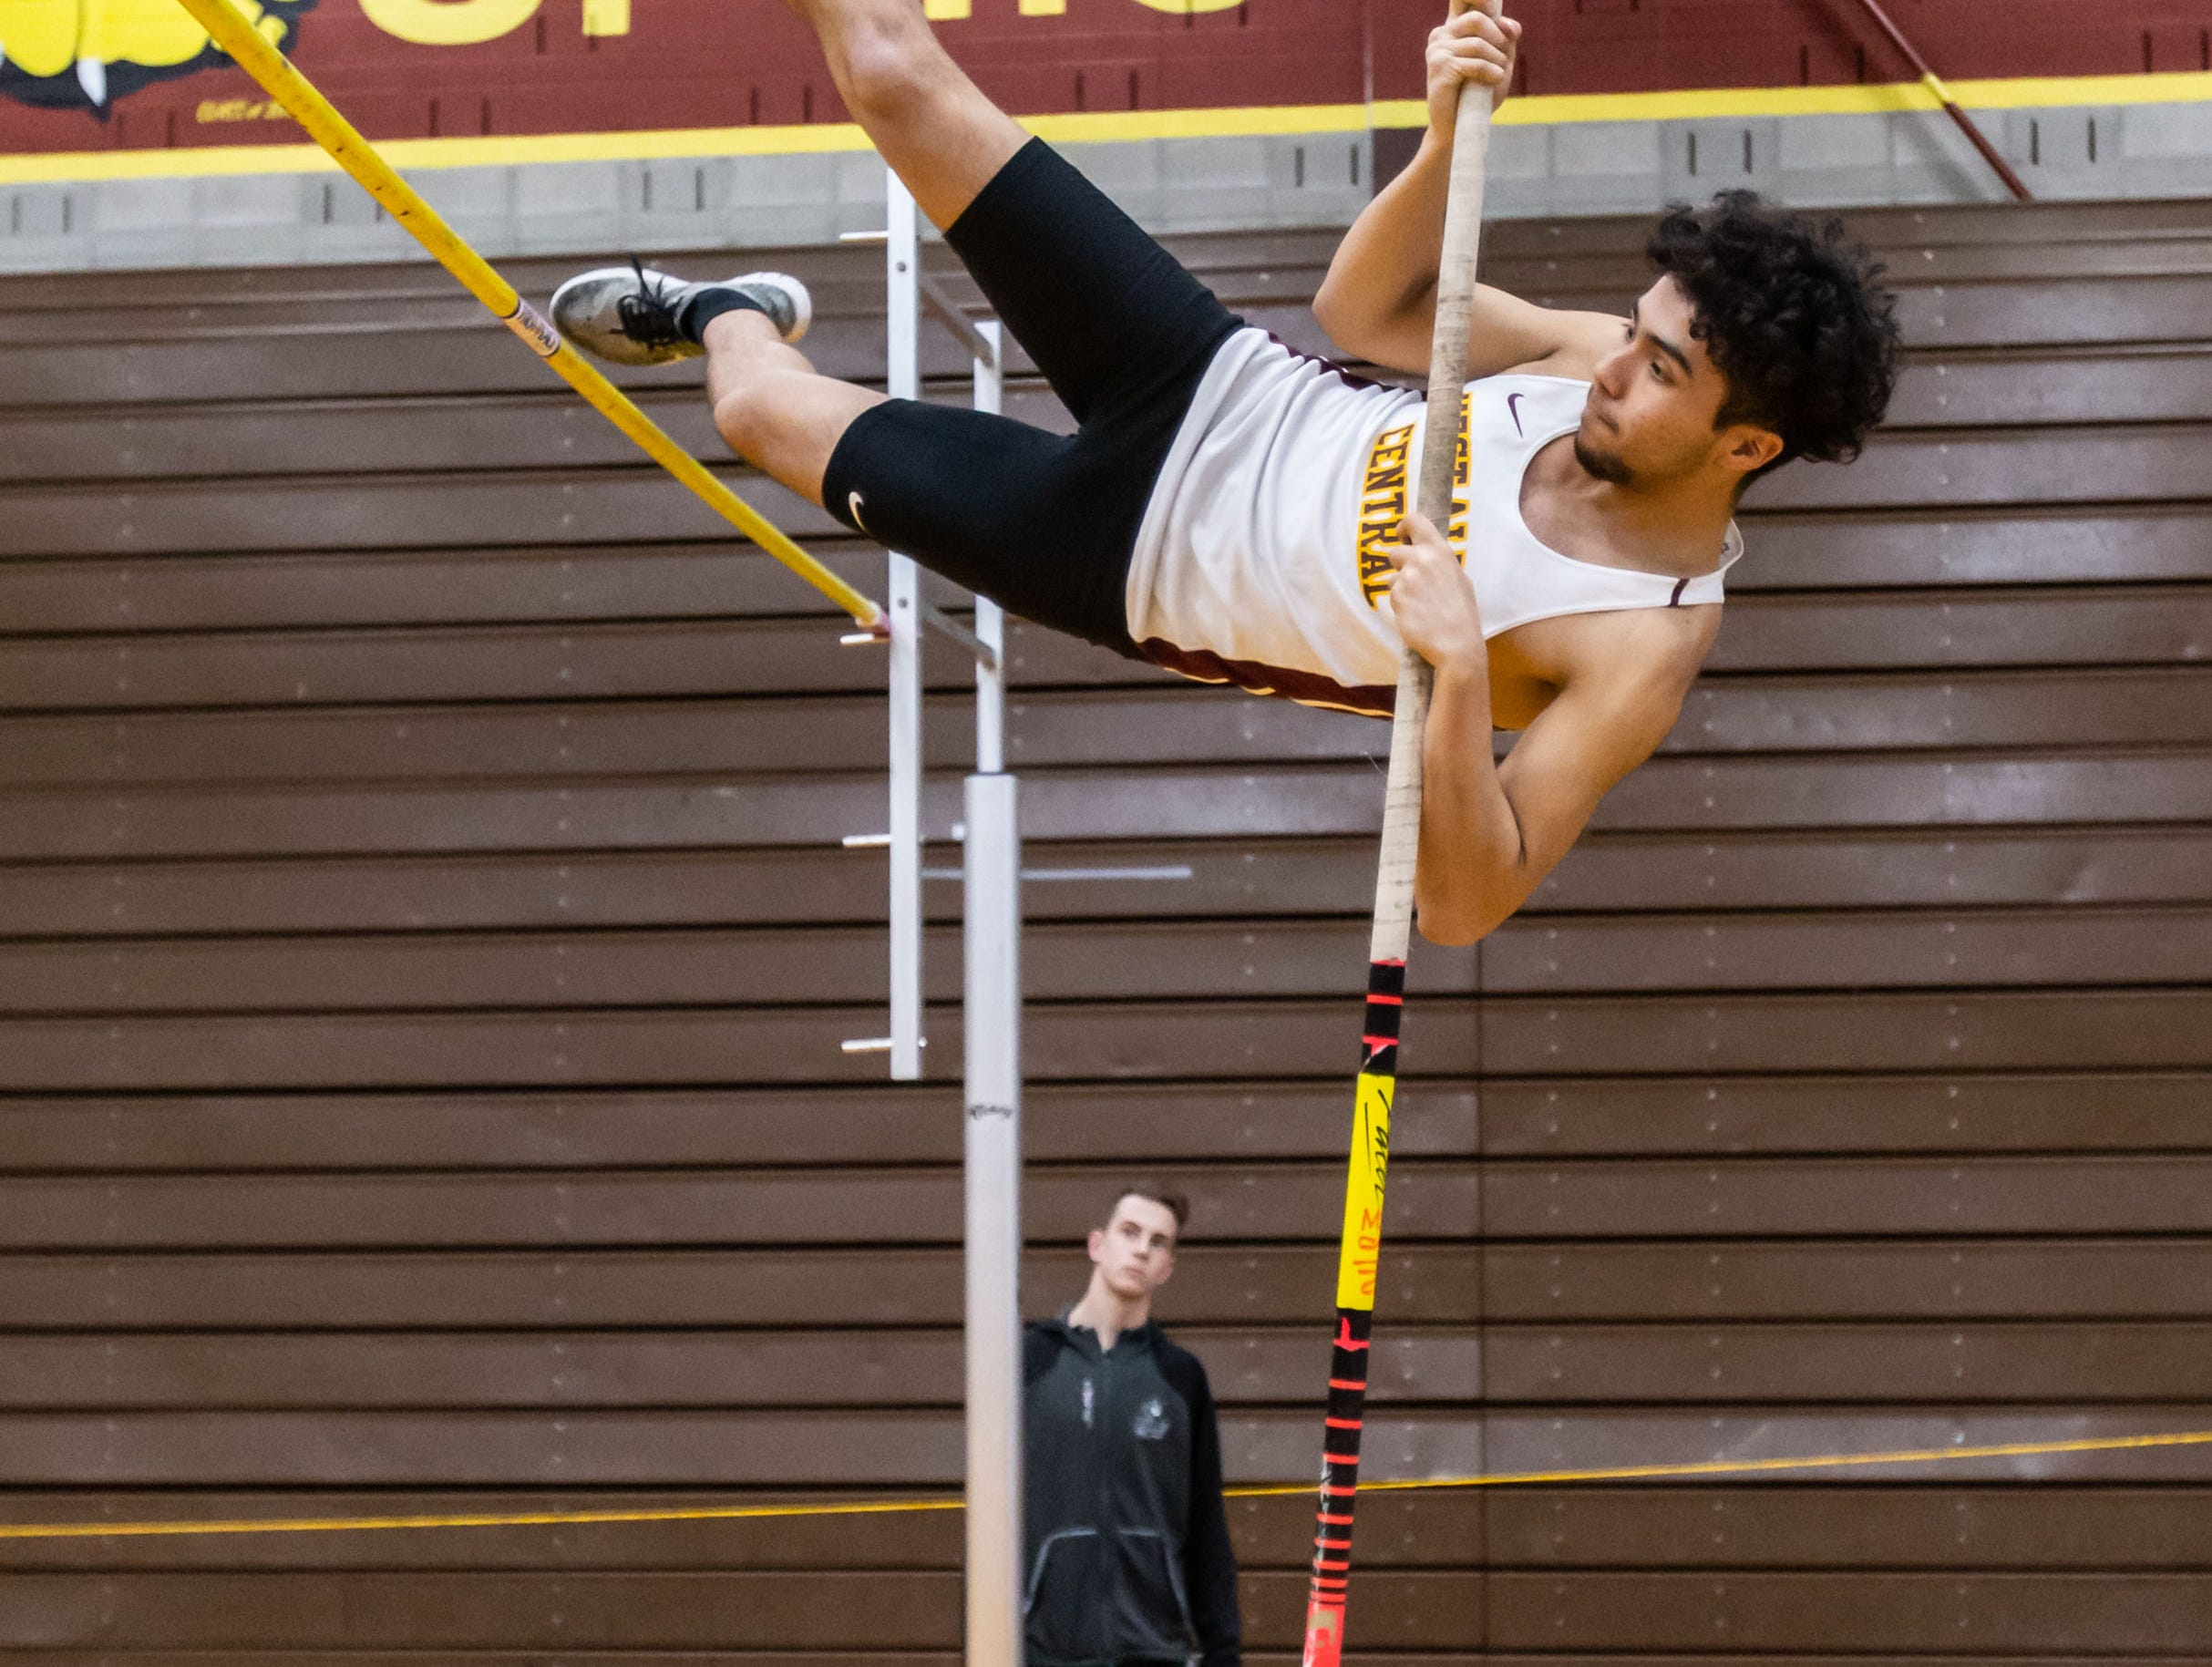 West Allis Central's David Loeza competes on the pole vault at the Reinhard Bulldog Relays hosted by West Allis Central on Friday, March 15, 2019.